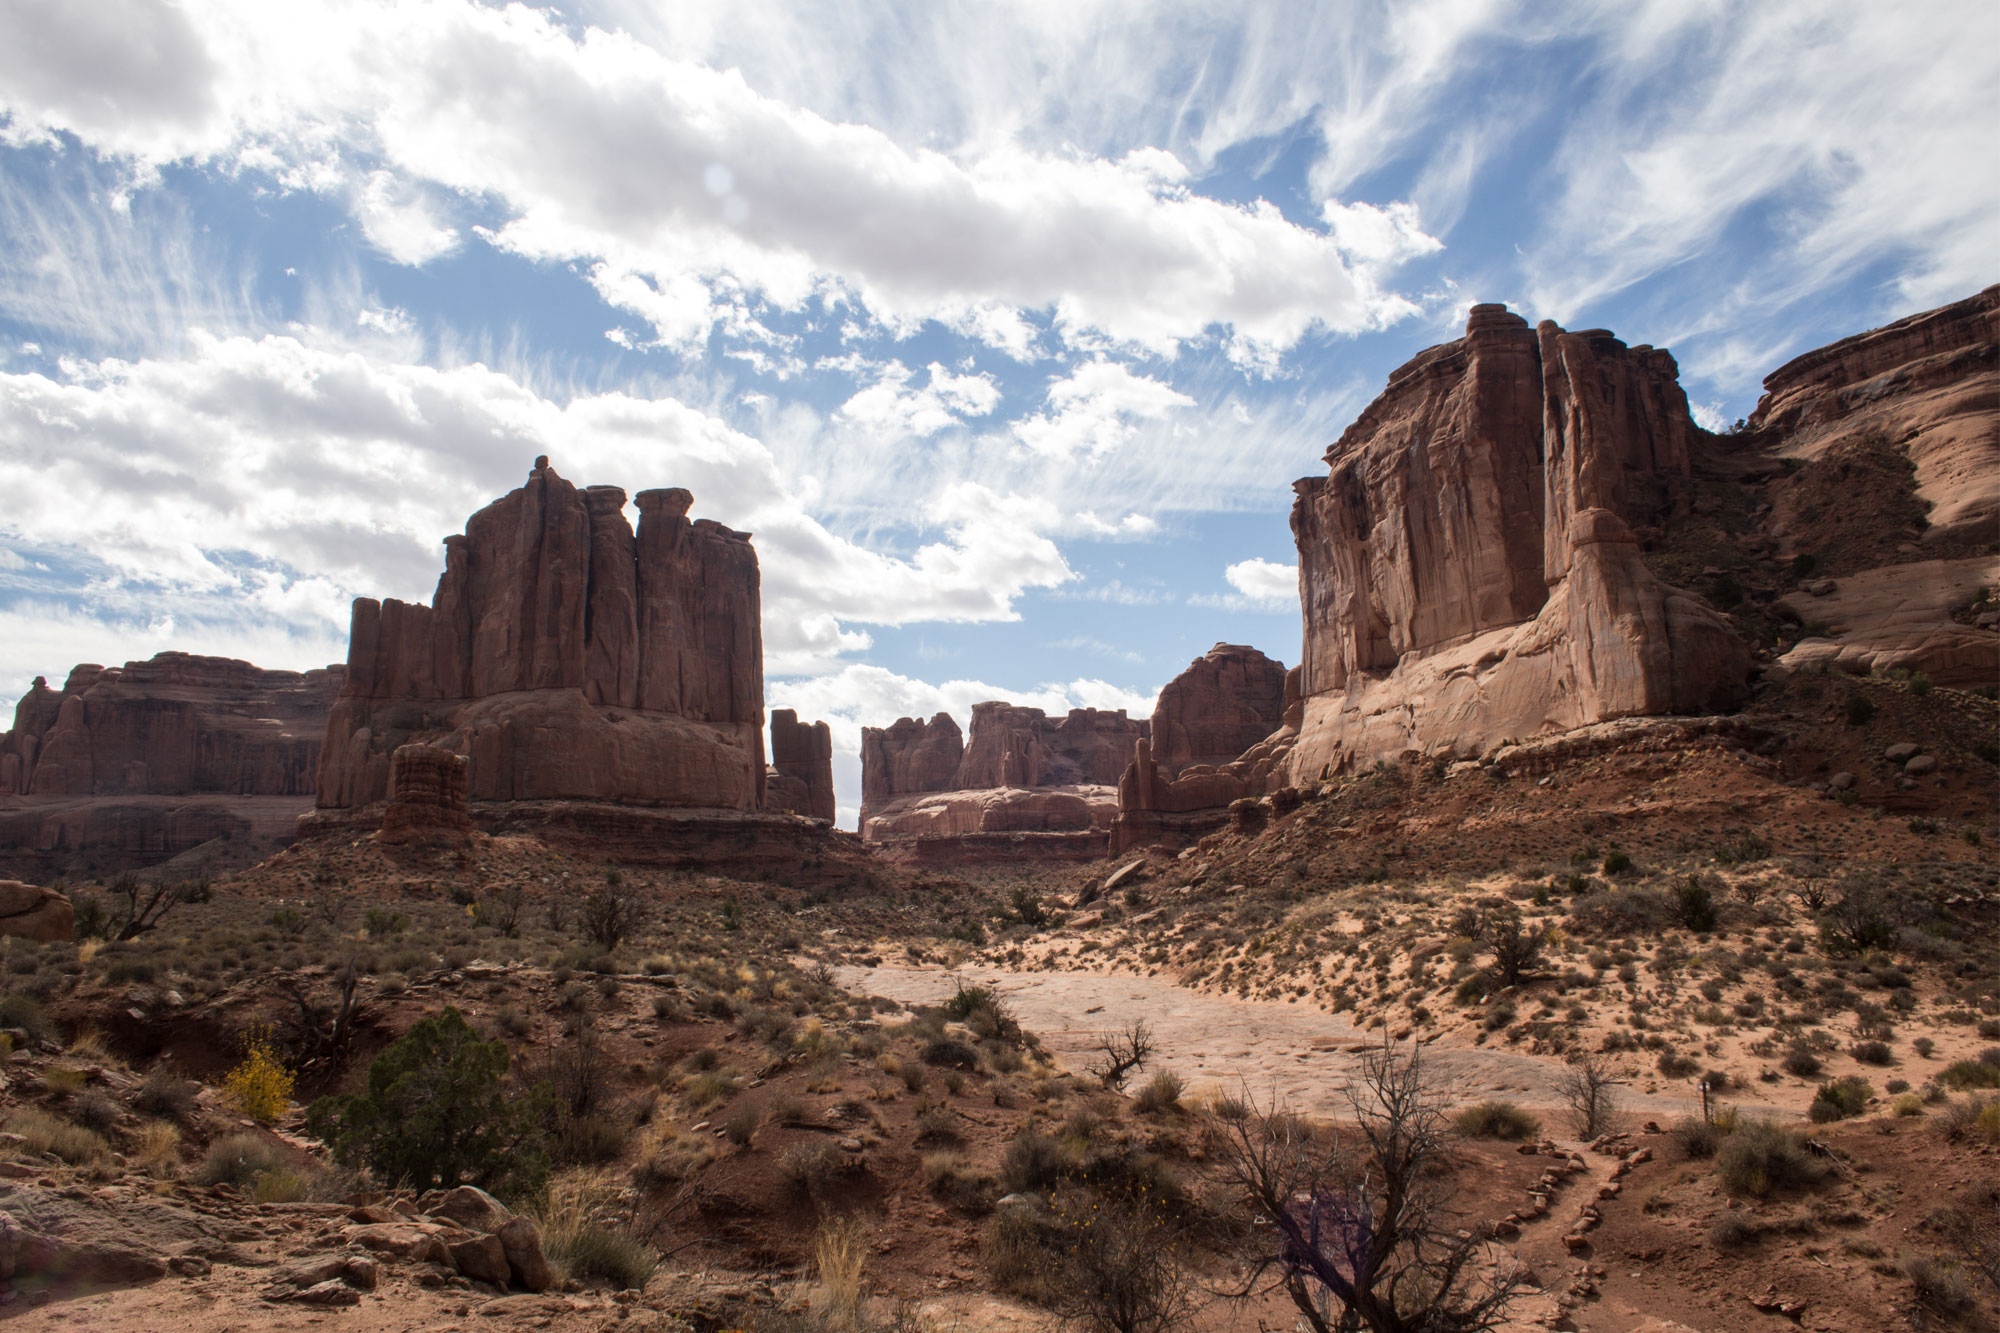 Looking back at Park Avenue, Arches National Park